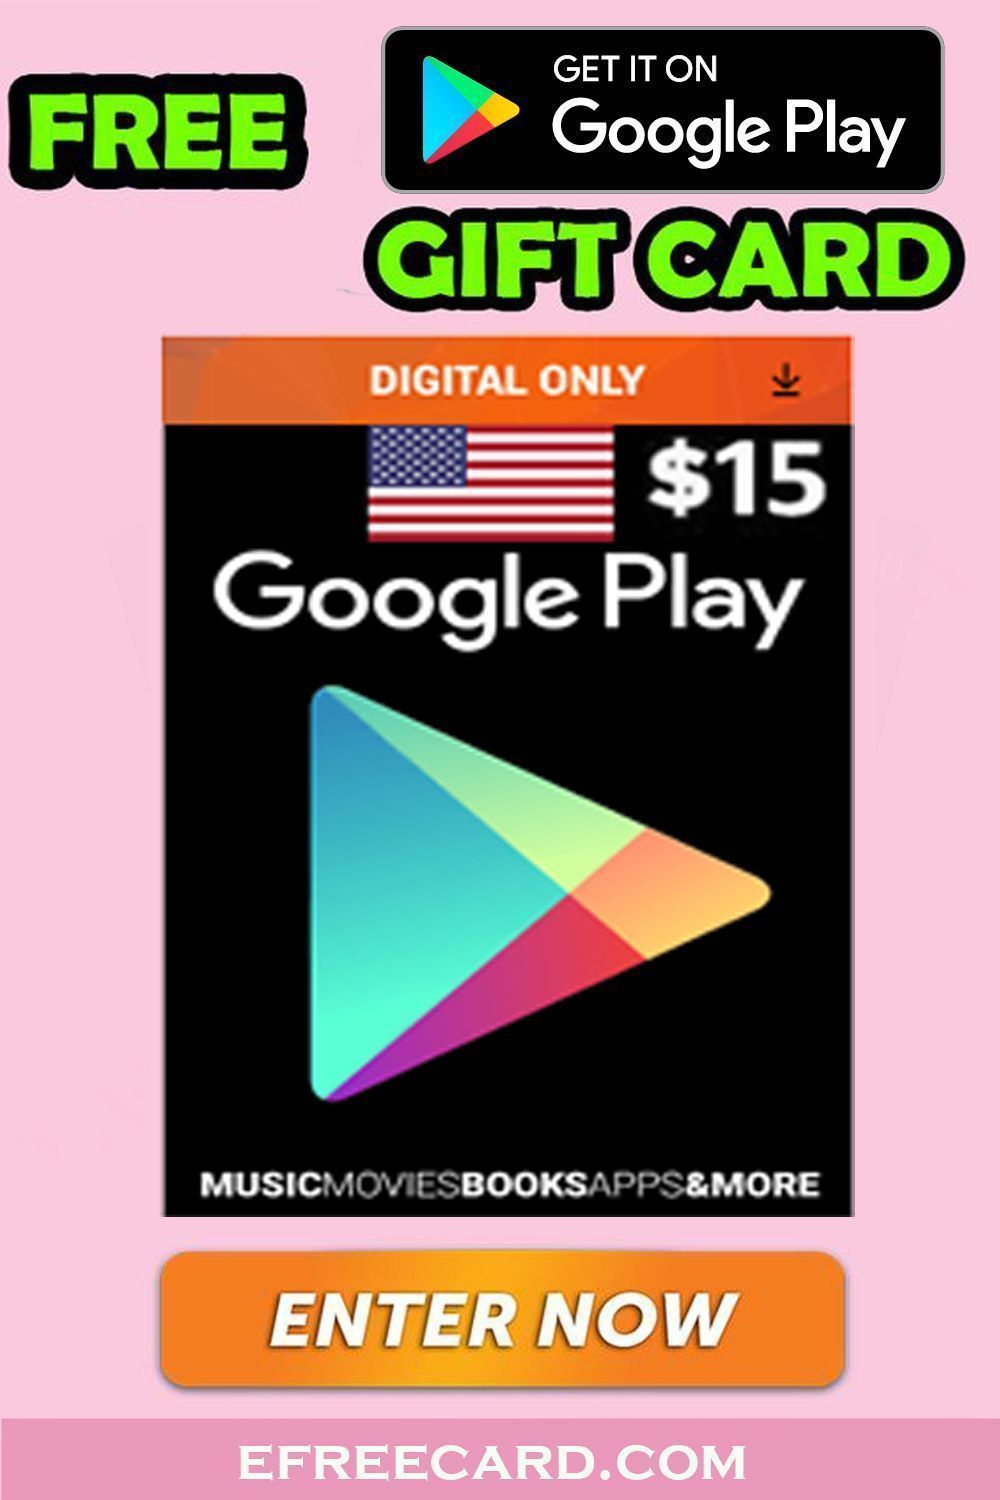 Free Google Play Gift Card Codes Google Play Gift Card Updated Daily Famous Last Words Google Play Gift Card Paypal Gift Card Gift Card Promotions